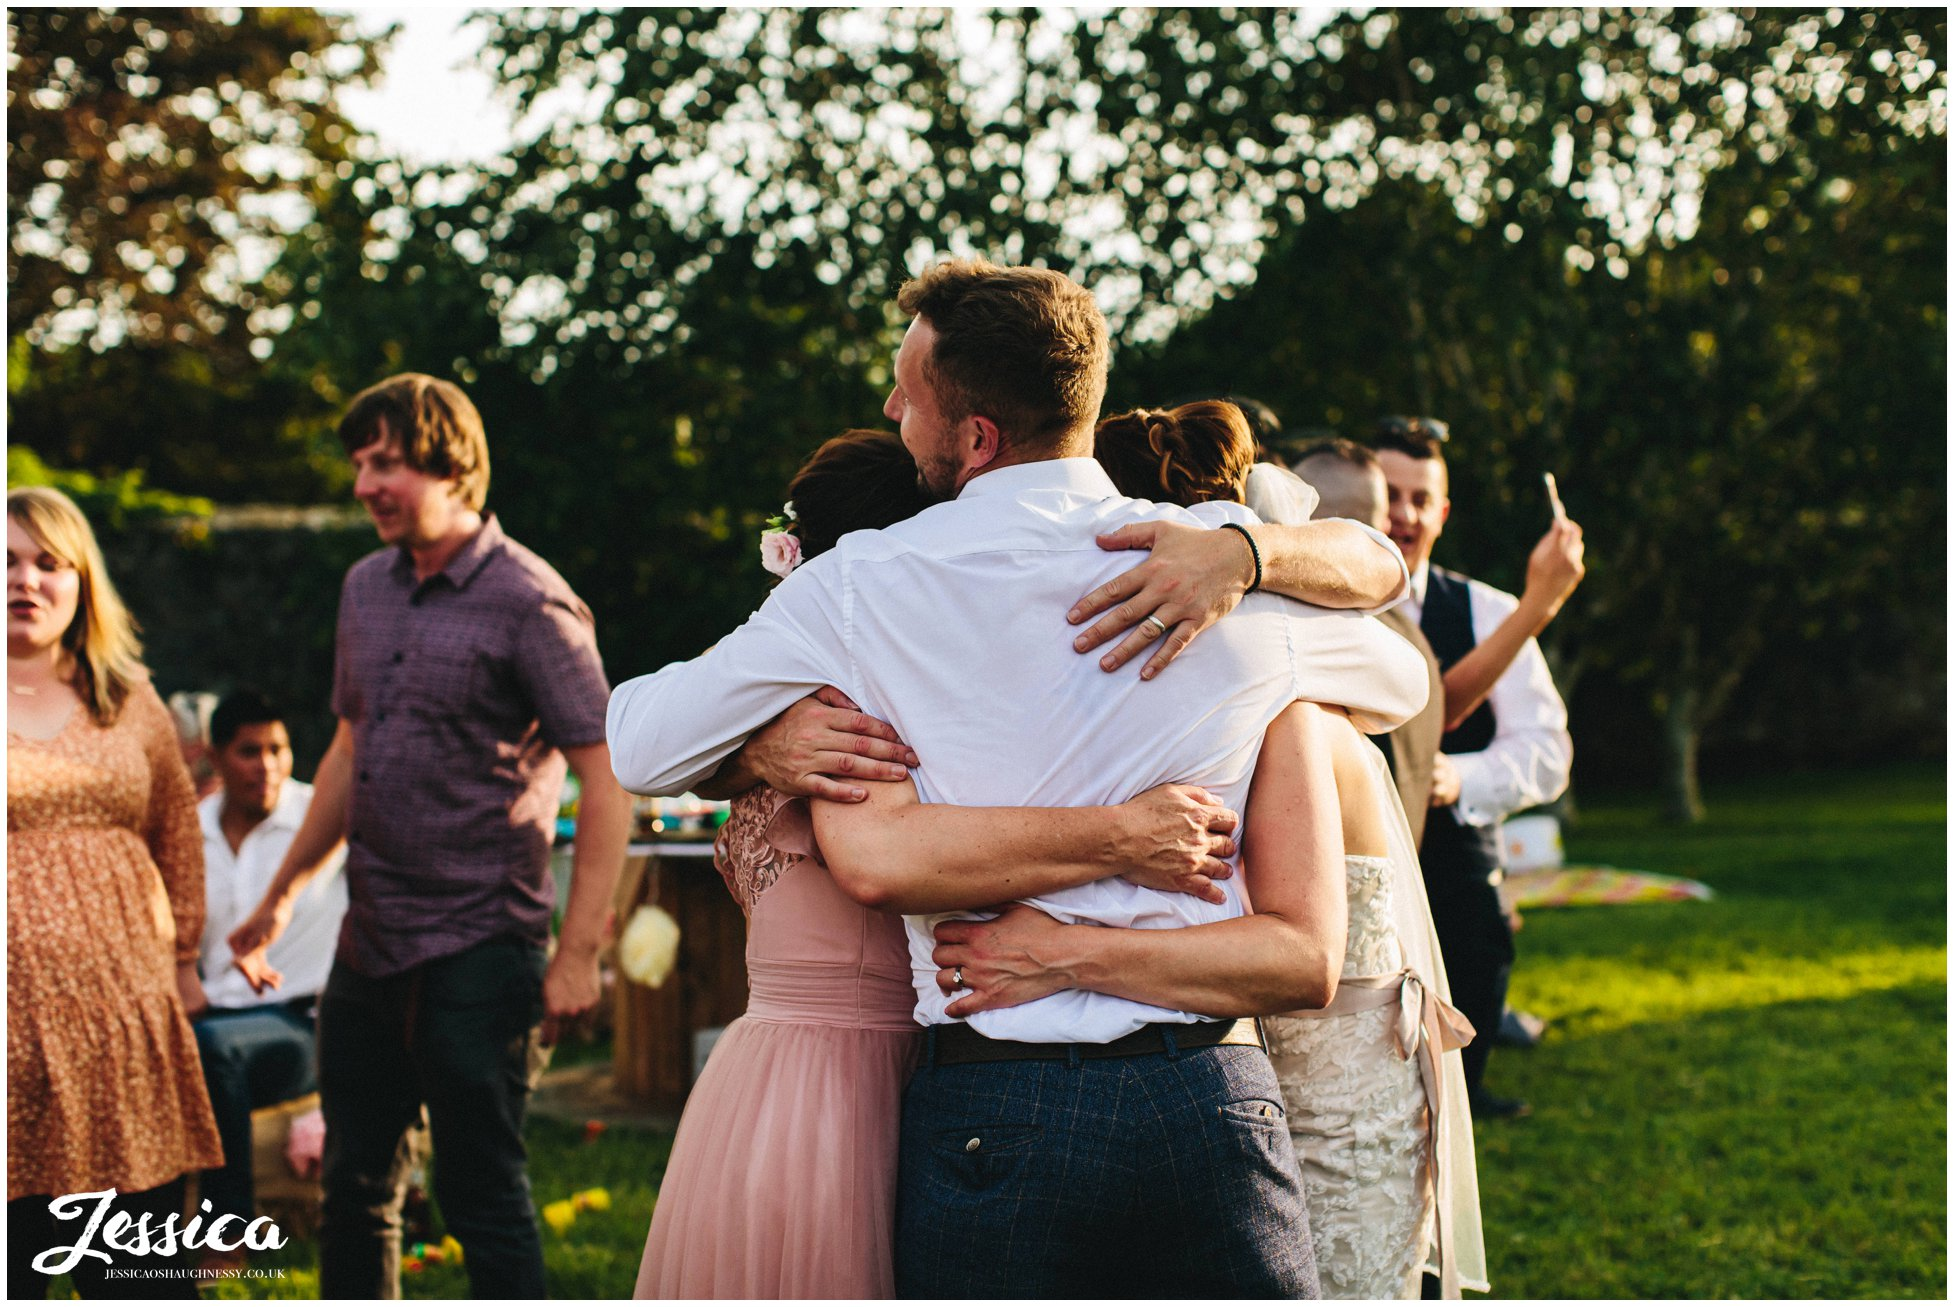 guests have group hug after the first dance ends